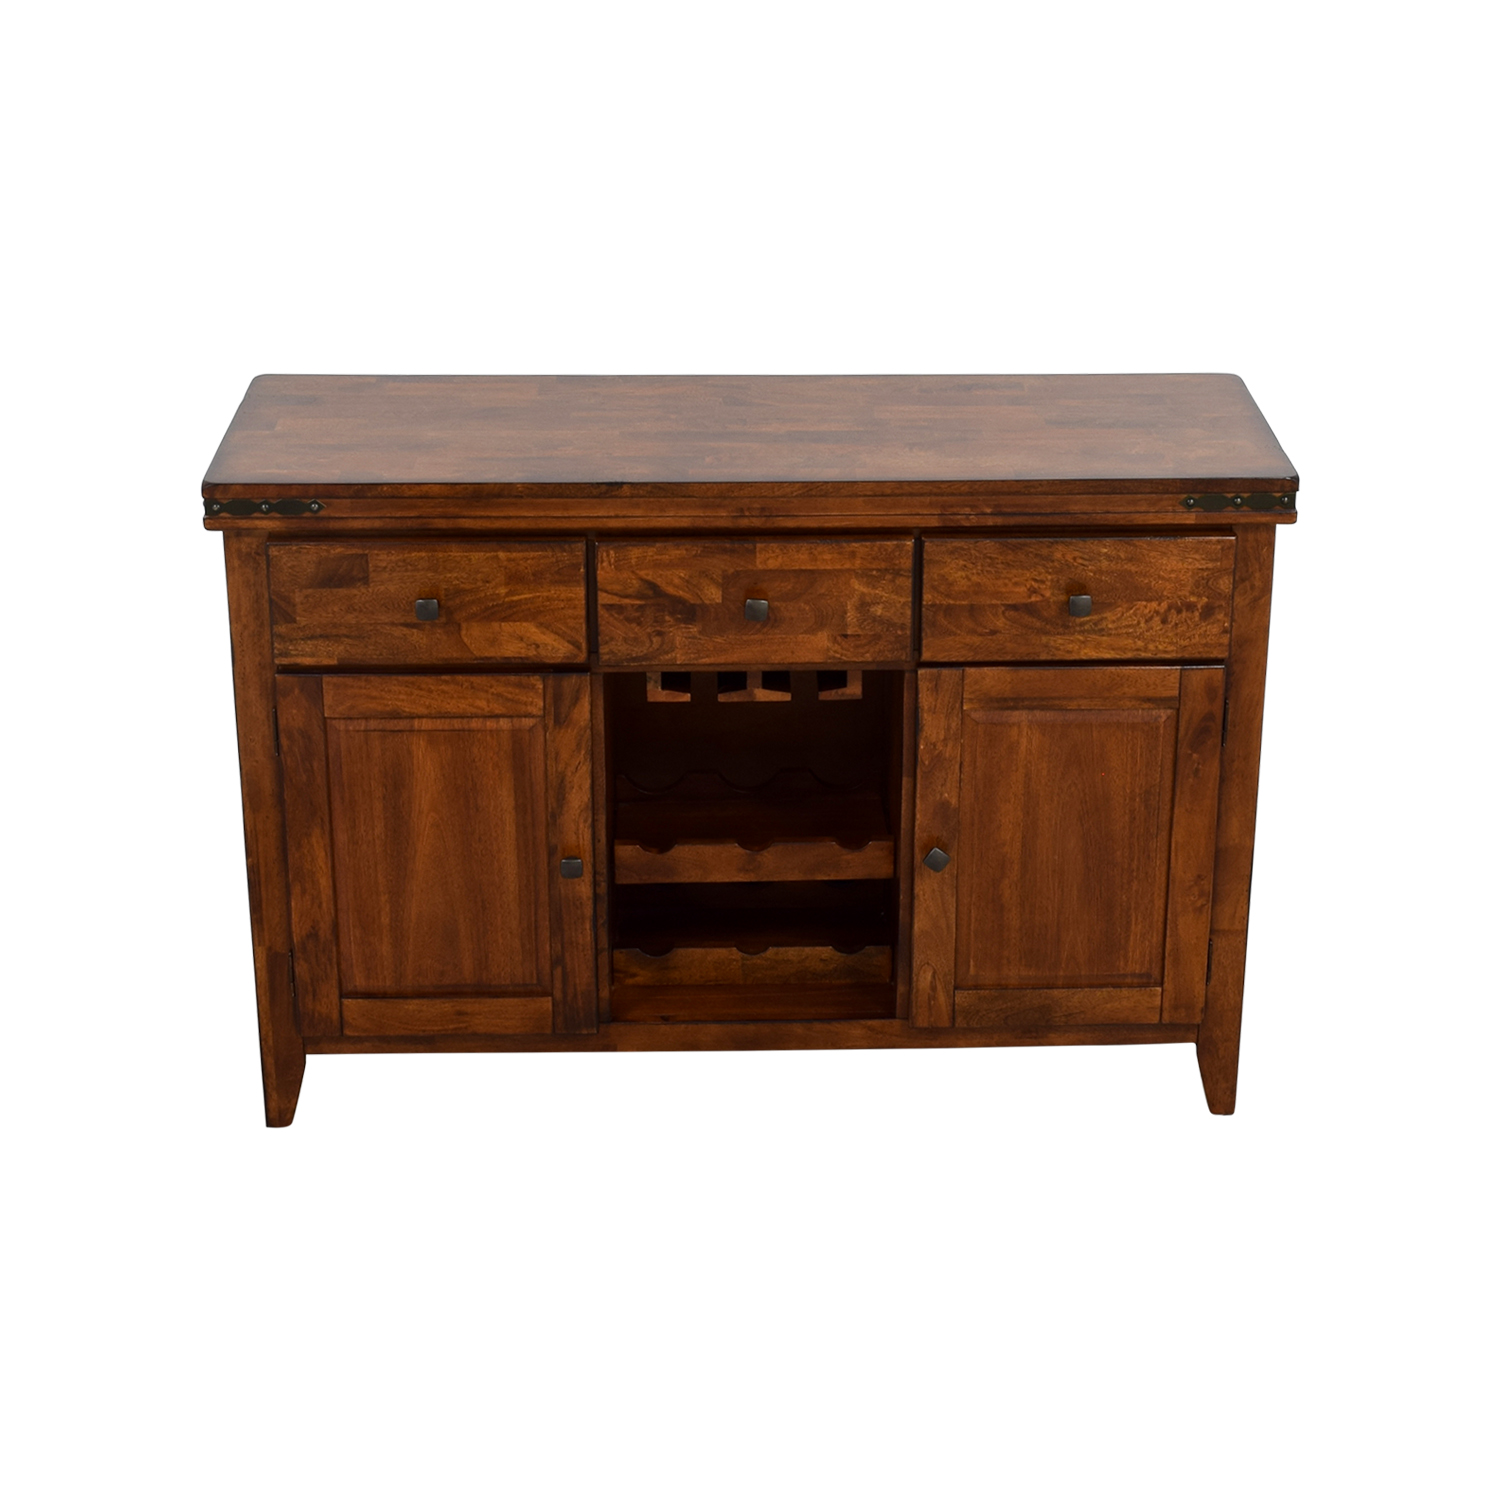 Bobs Furniture Bobs Furniture Bar Table or Sideboard second hand